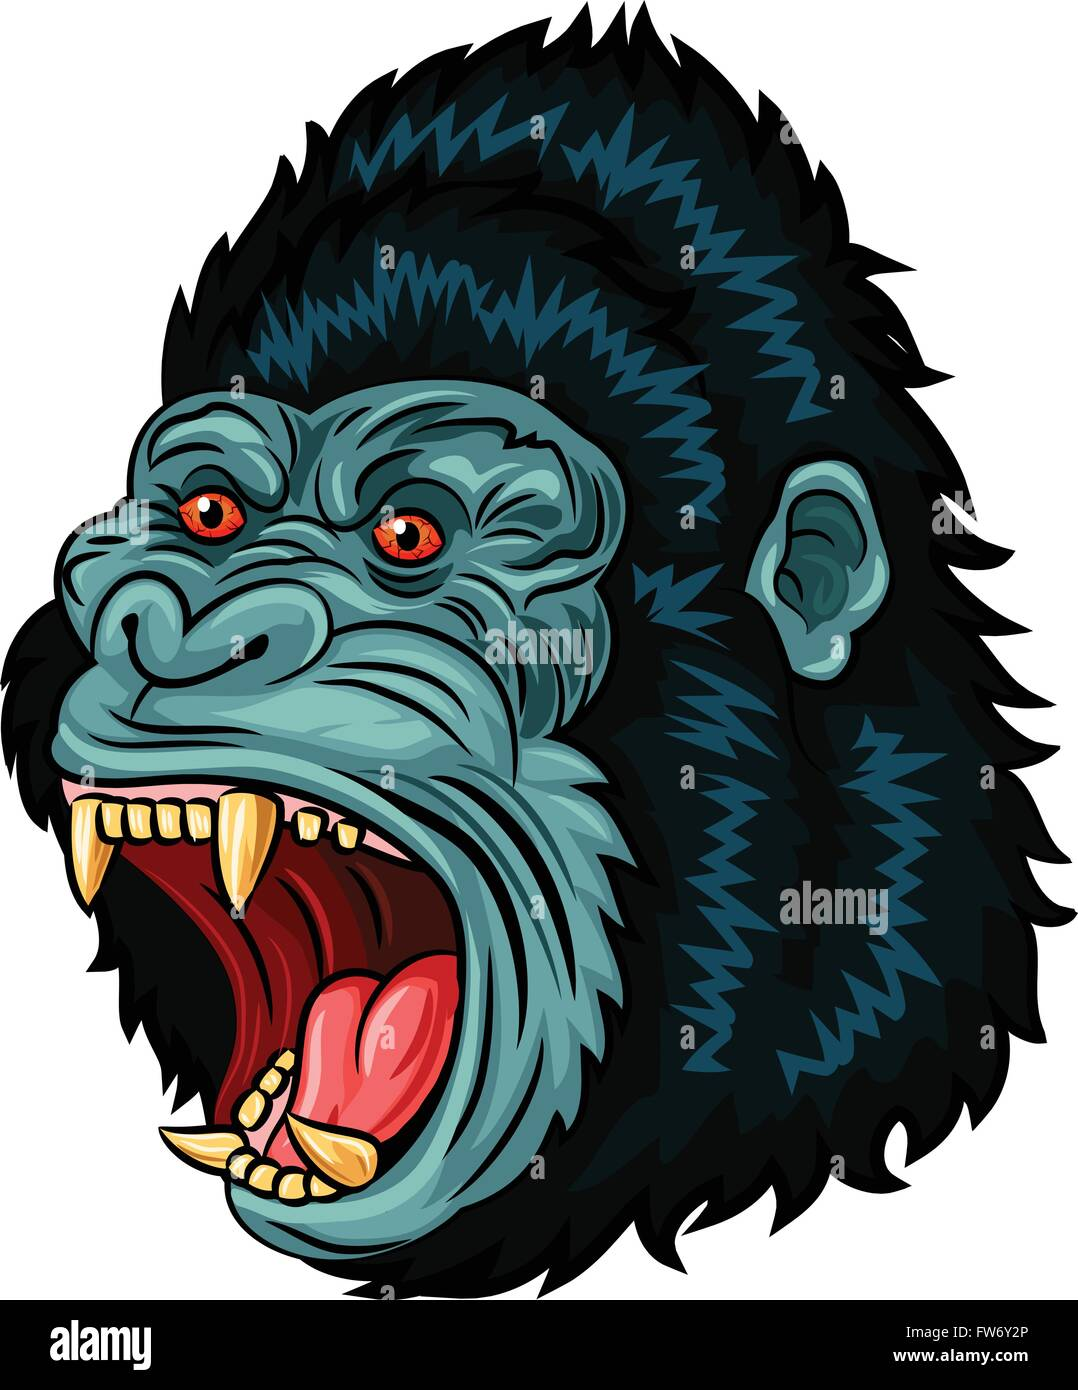 c7c6247d5 Illustration of Angry gorilla head character isolated on white background